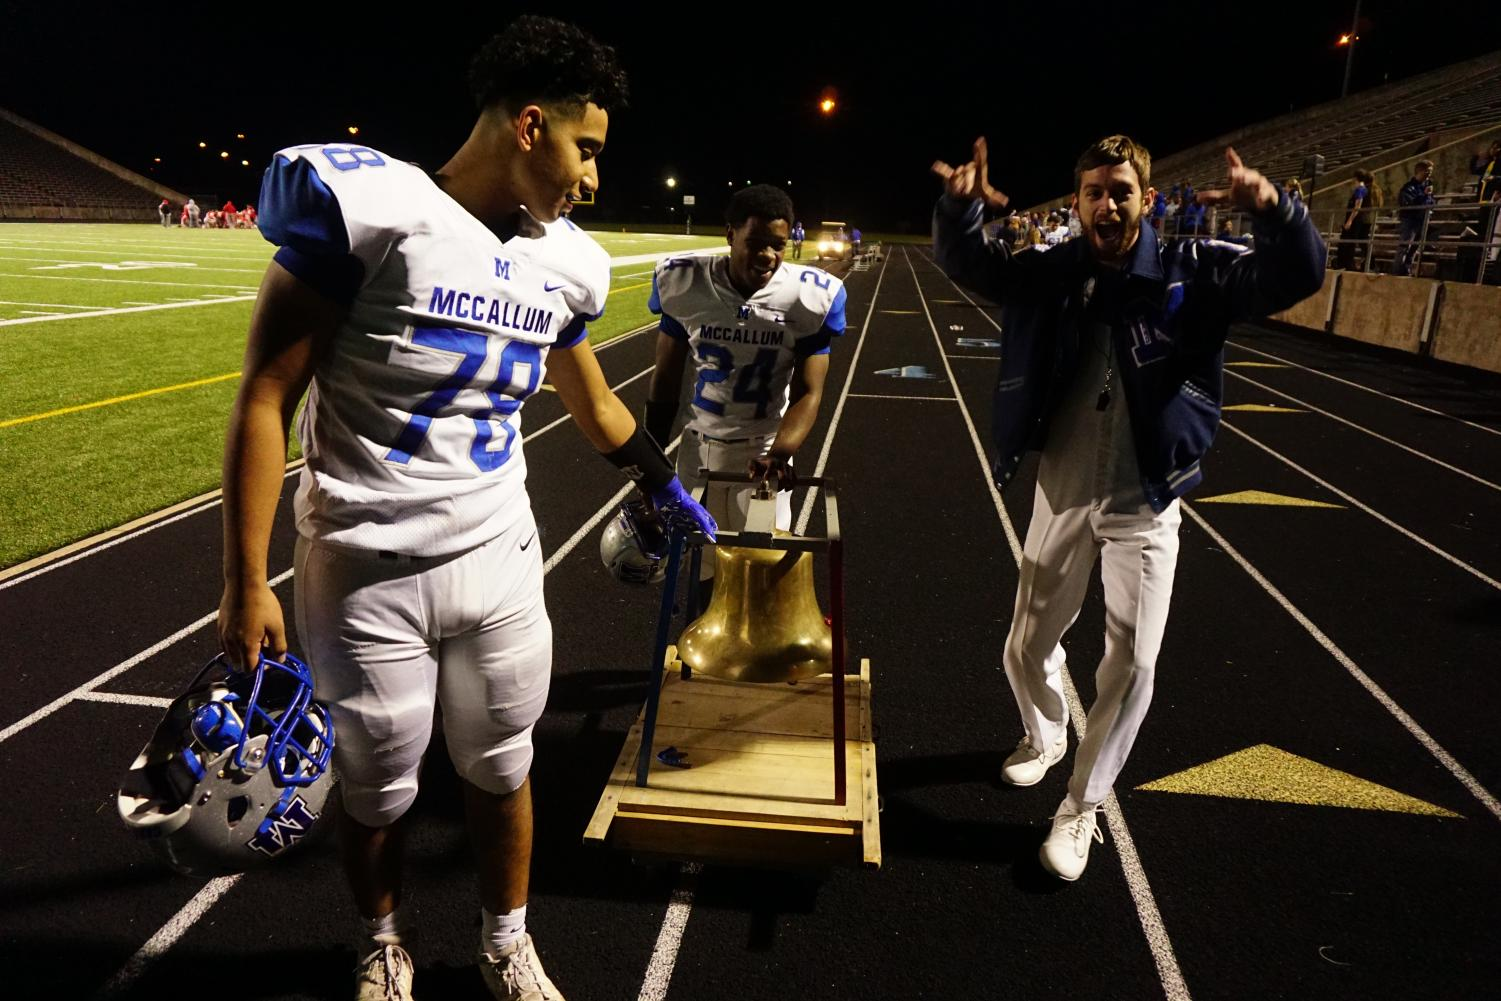 Sophomore Charlie Pecina and junior Caleb Brown wheel the bell towards the team bus after the Knight 63-0 win over the Travis Rebels on Friday. The win marks the 19th time the Knights have taken home the bell in the past 20 years. Photo by Caleb Melville.